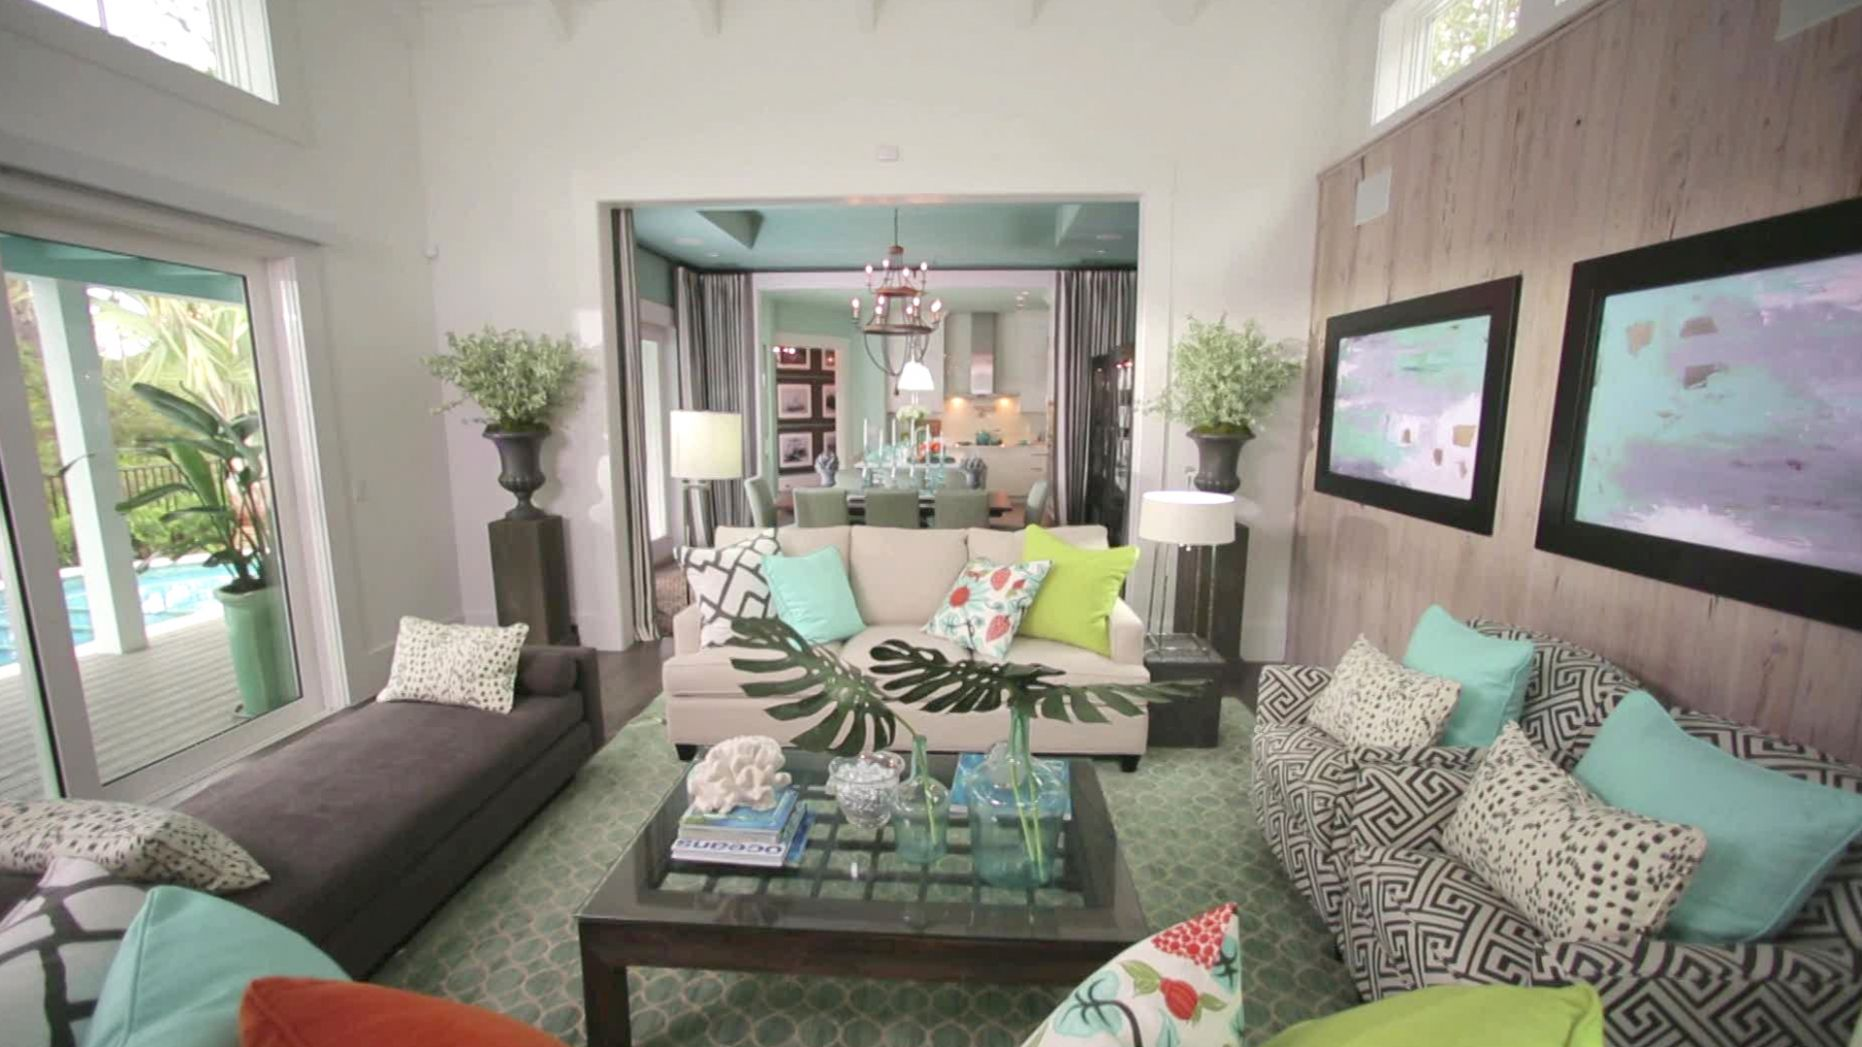 HGTV Smart Home 8 Living Room Videos | HGTV Smart Home 8 | HGTV